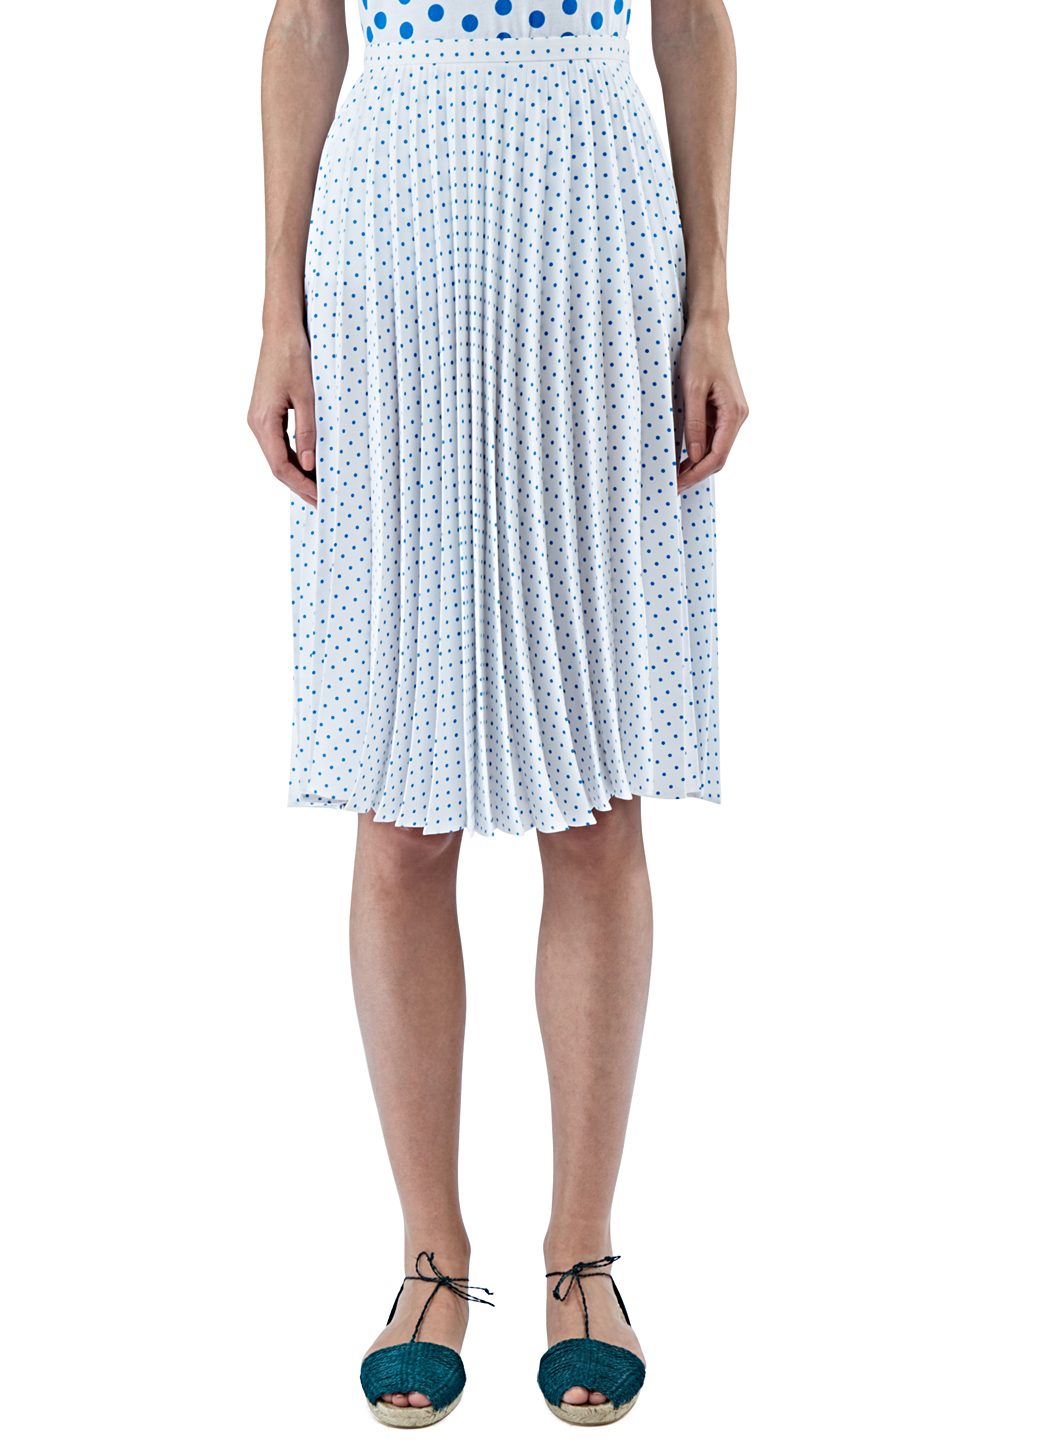 J.w.anderson Womenu0026#39;s Polka Dot Pleated Skirt In Blue And White in Blue - Save 70% | Lyst